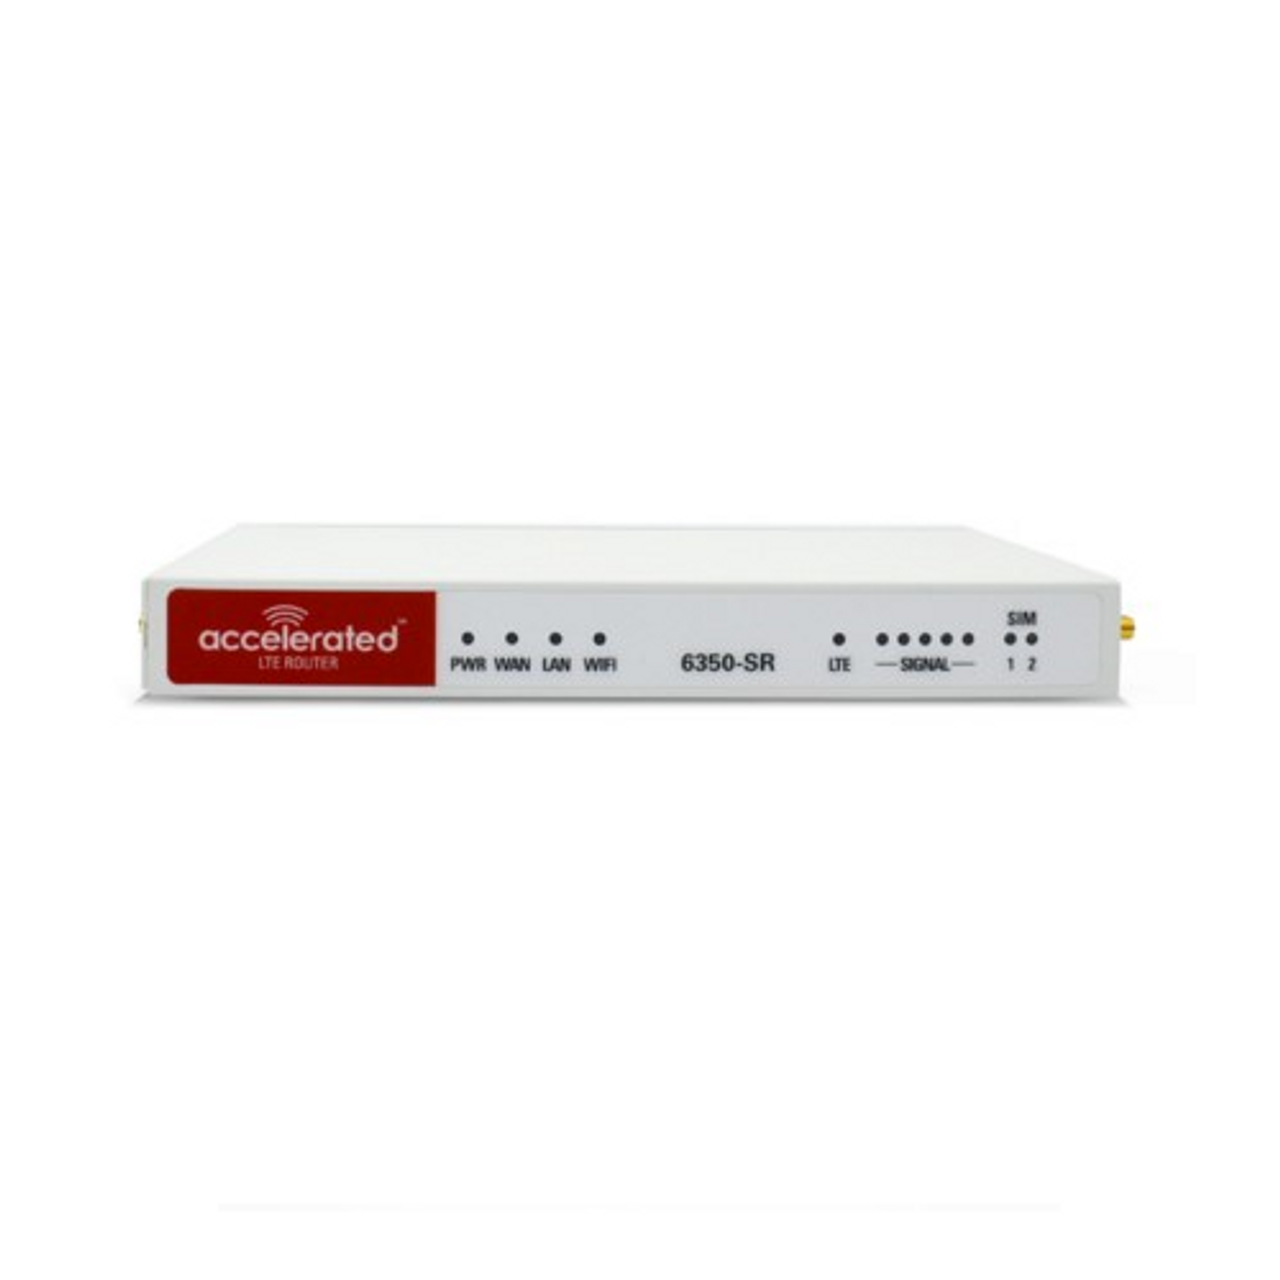 Accelerated 6350-SR LTE Router CAT 6 w/ 9dBi MIMO Antenna, 2 x 50 FT Cables + 2 x Adapters - SMA Male